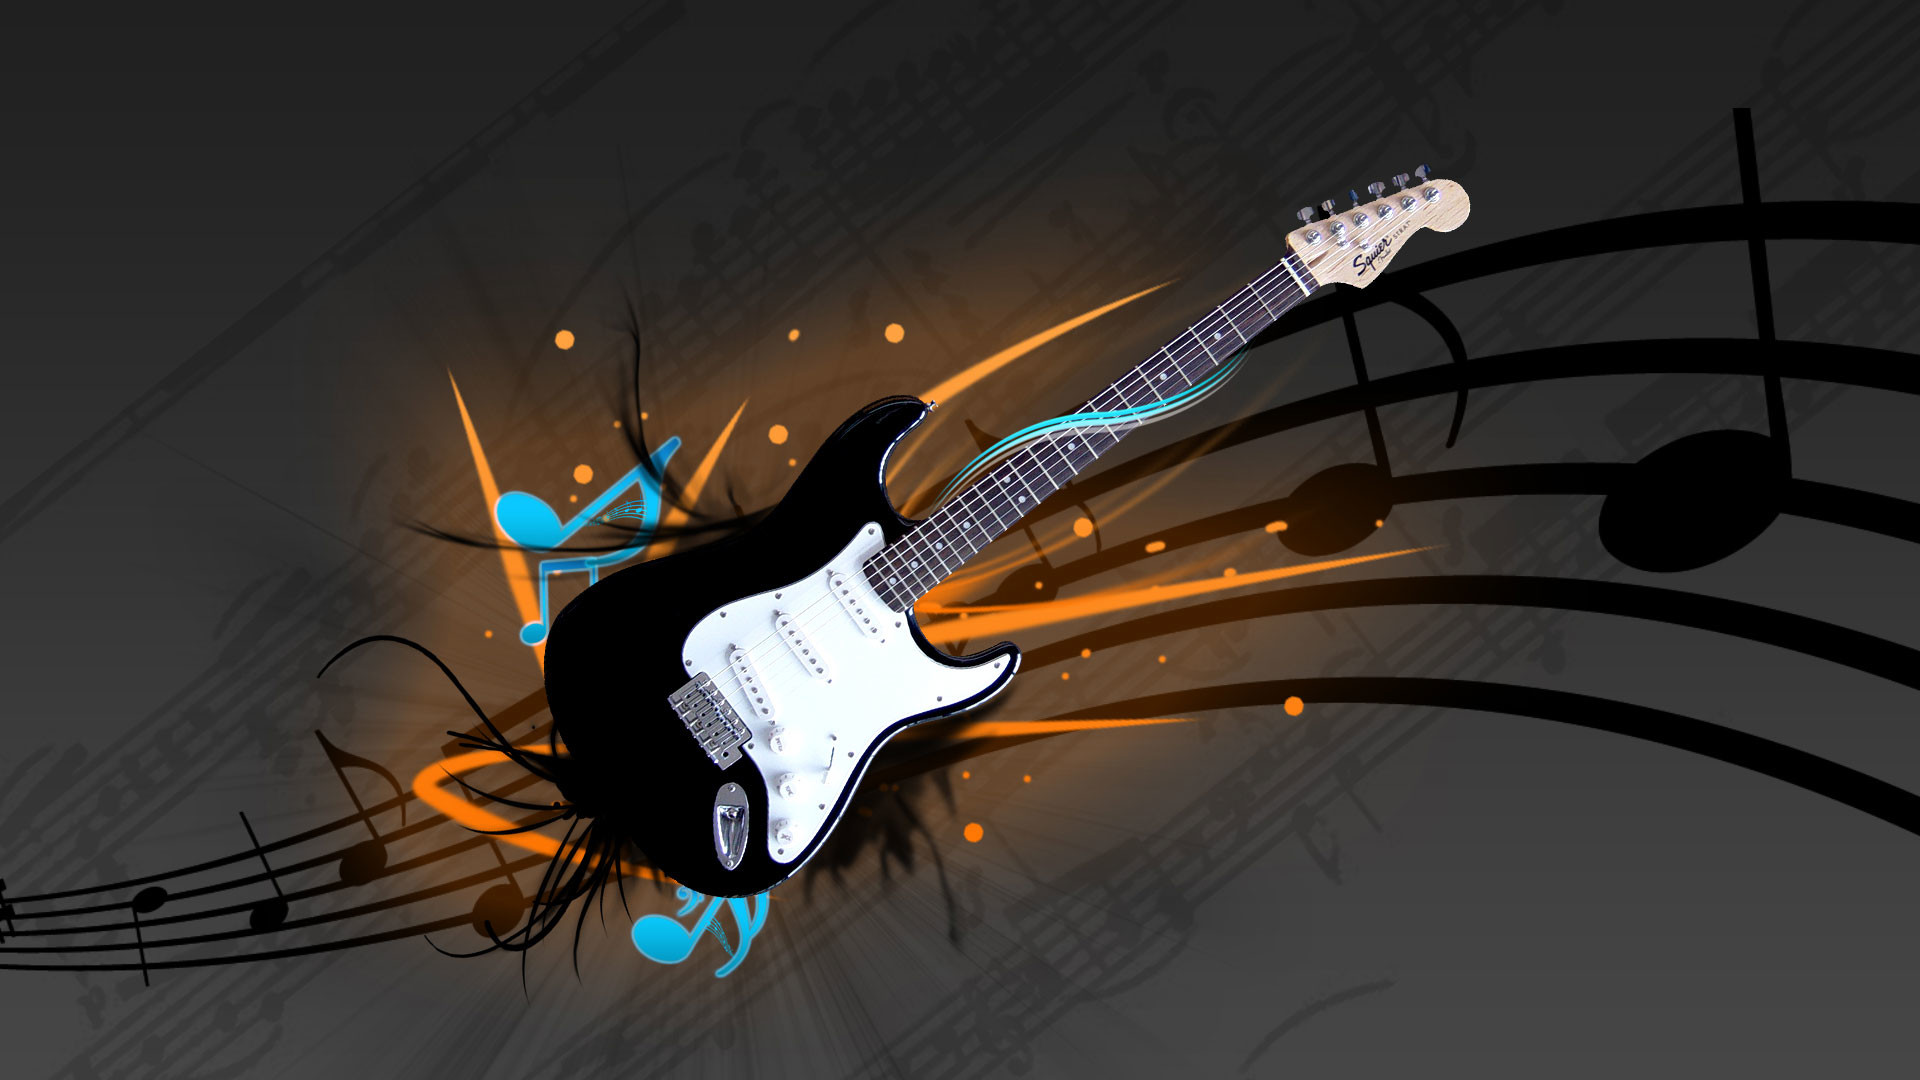 Cool guitar backgrounds 58 images - Free guitar wallpapers for pc ...